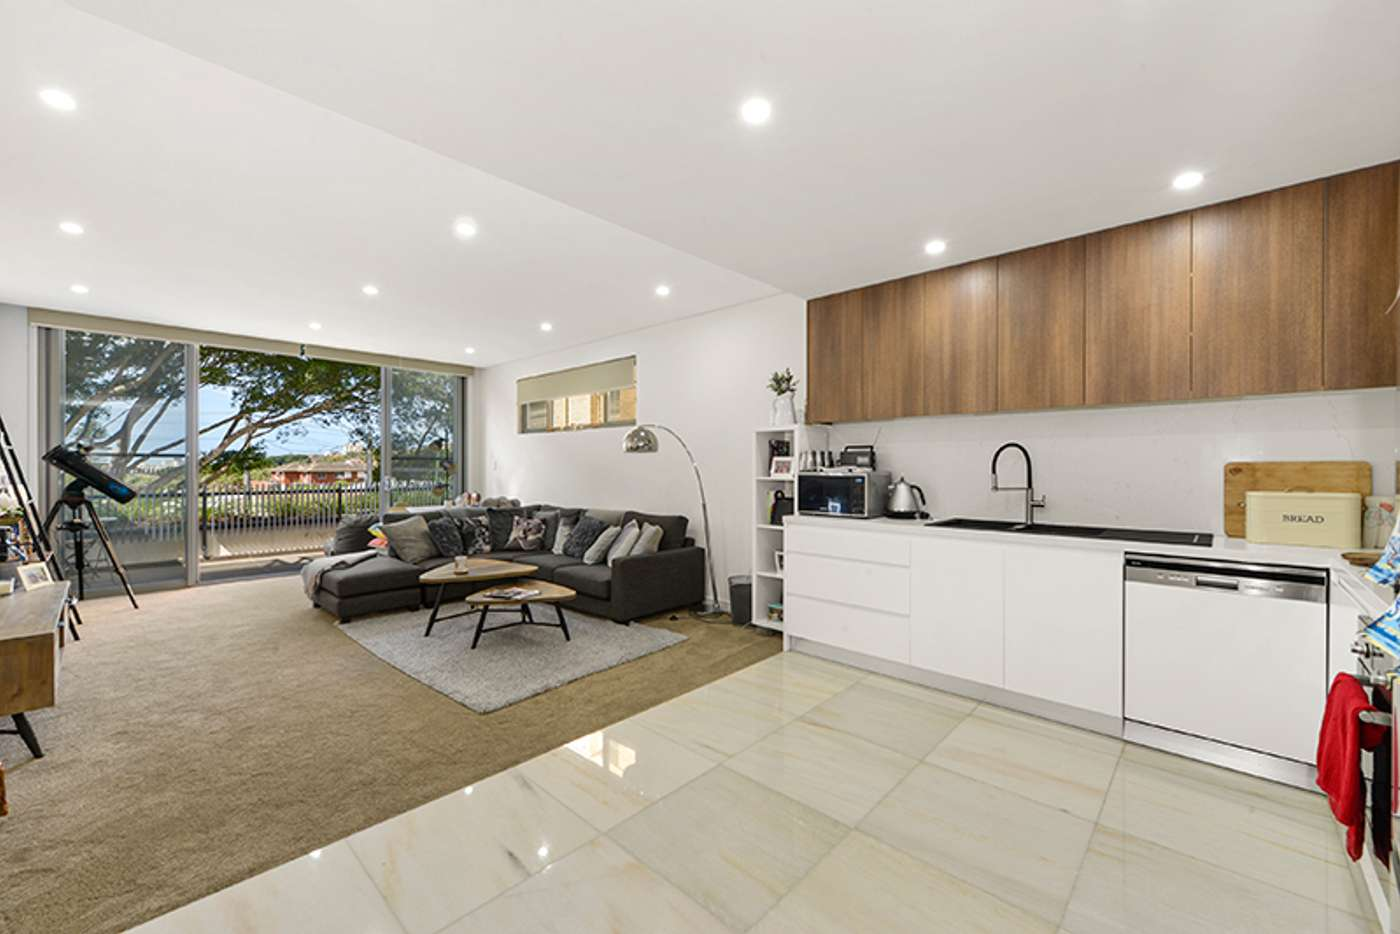 Main view of Homely apartment listing, 1/53 Birriga Road, Bellevue Hill NSW 2023